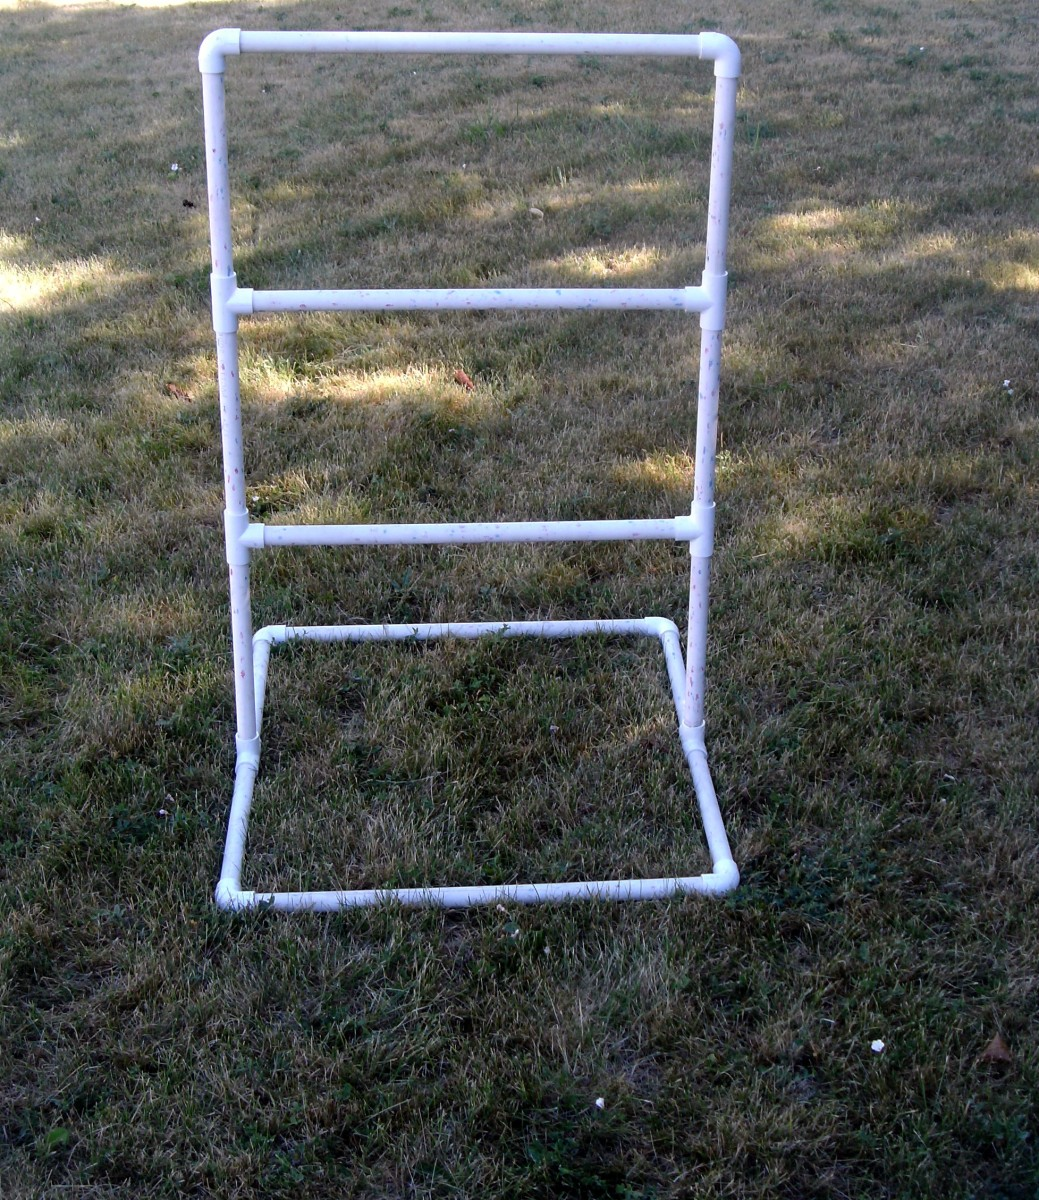 Assembled ladder